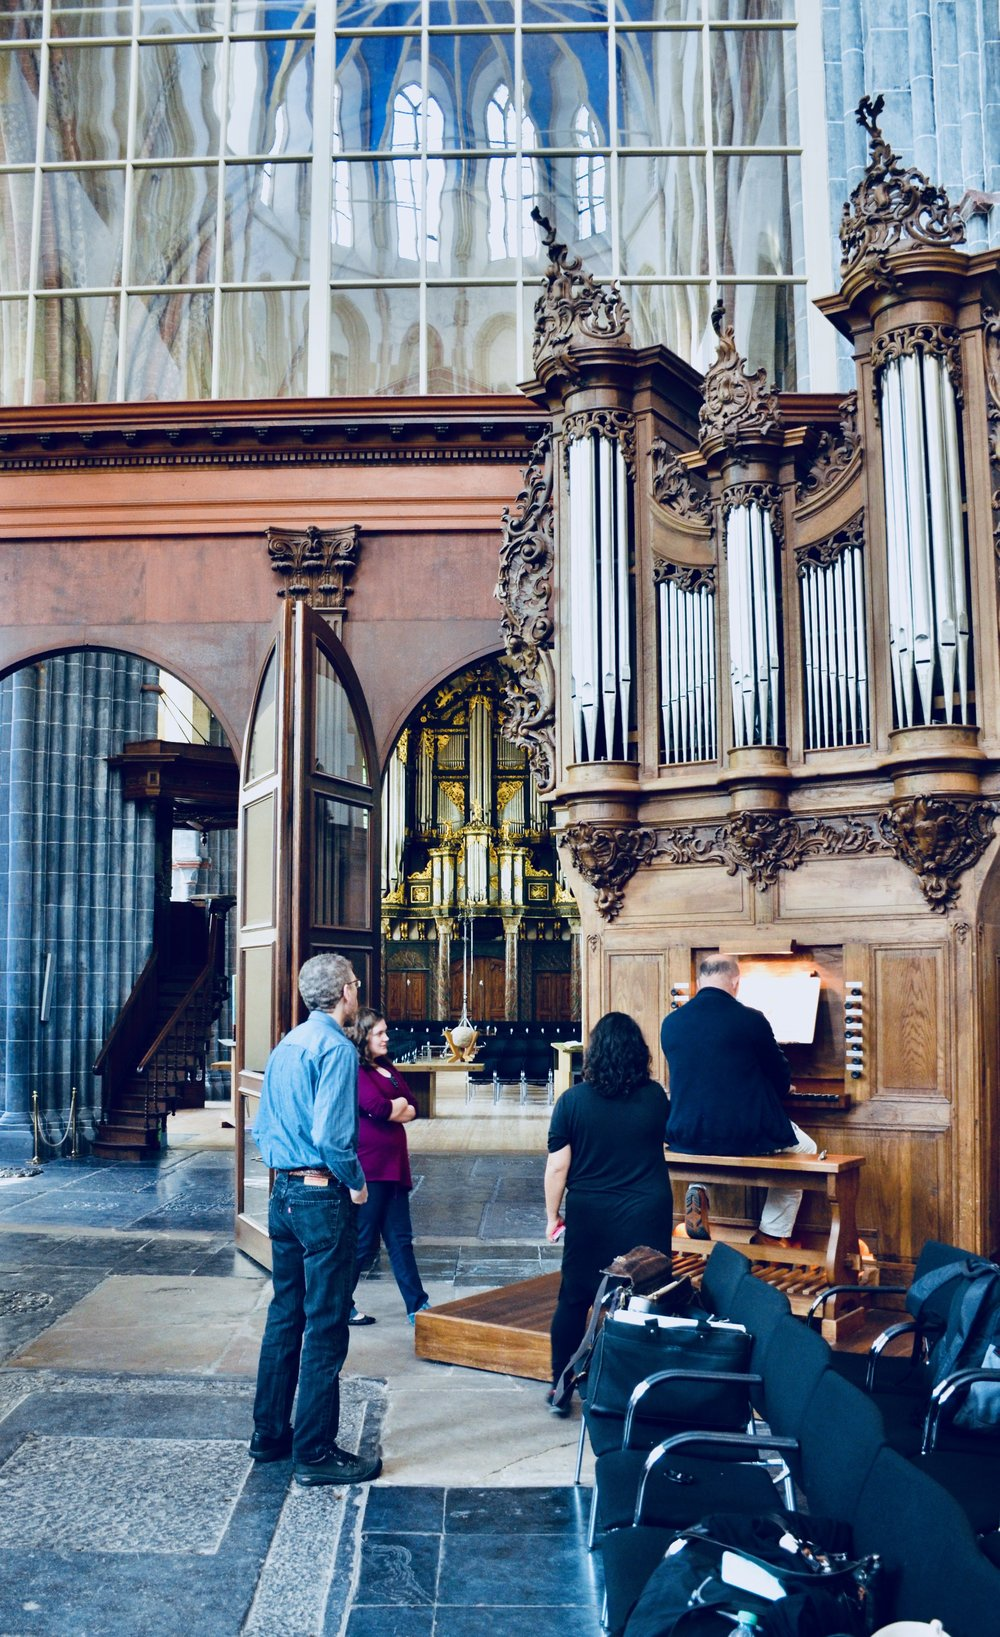 Erwin Wiersinga demonstrates the 1742 Le Picard organ in Martinikerk, Groningen.